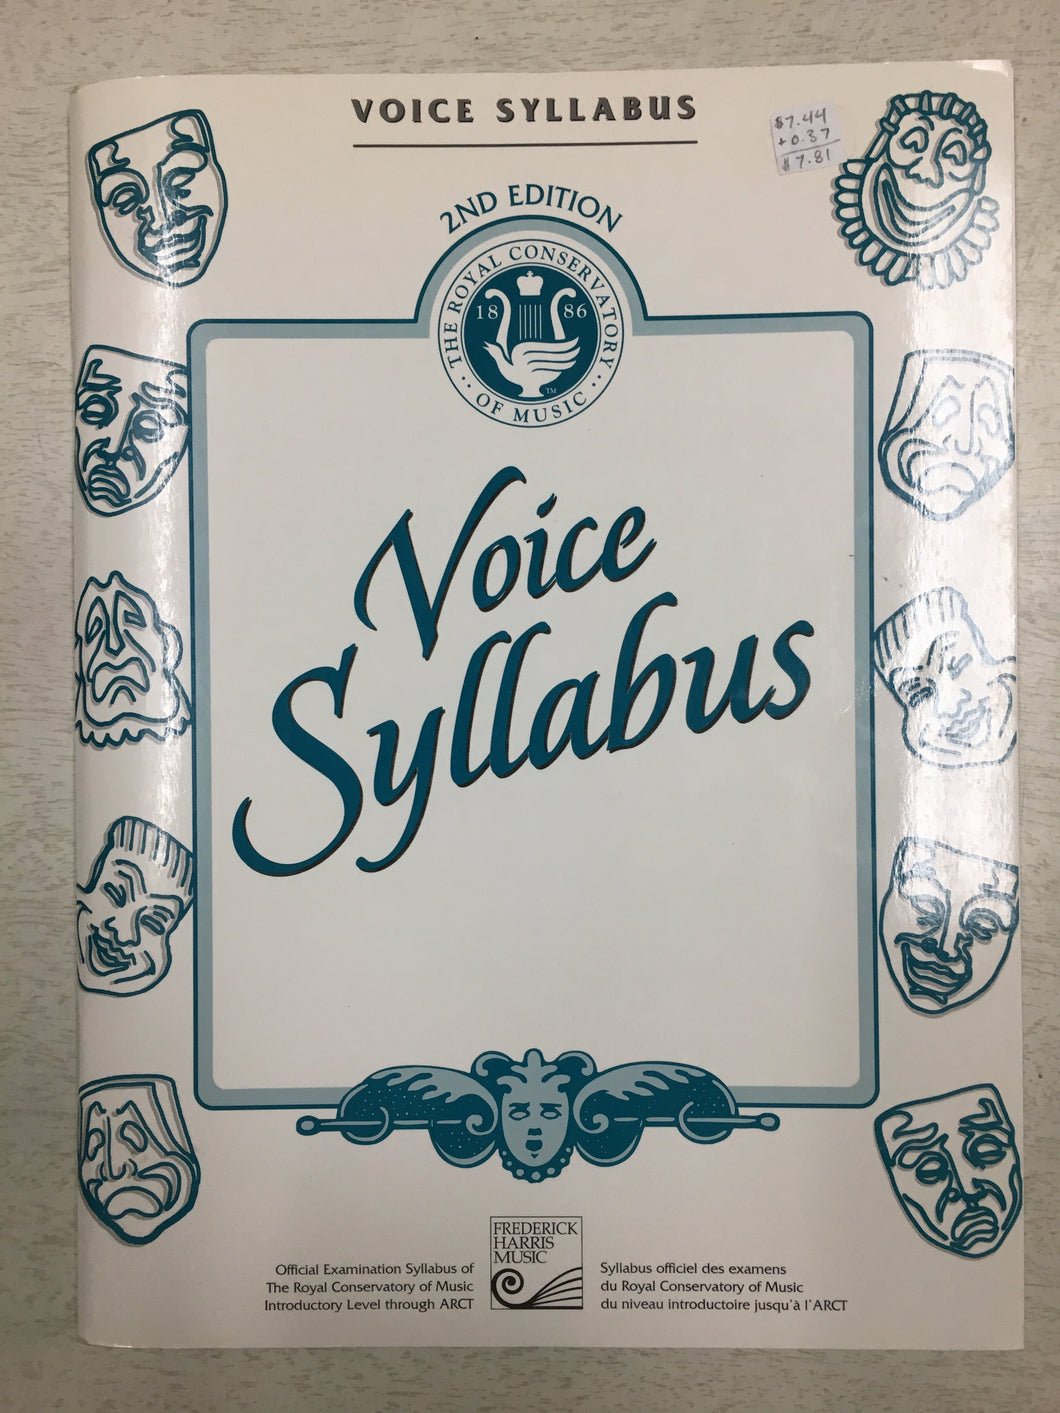 Voice Syllabus 2nd Edition 1998